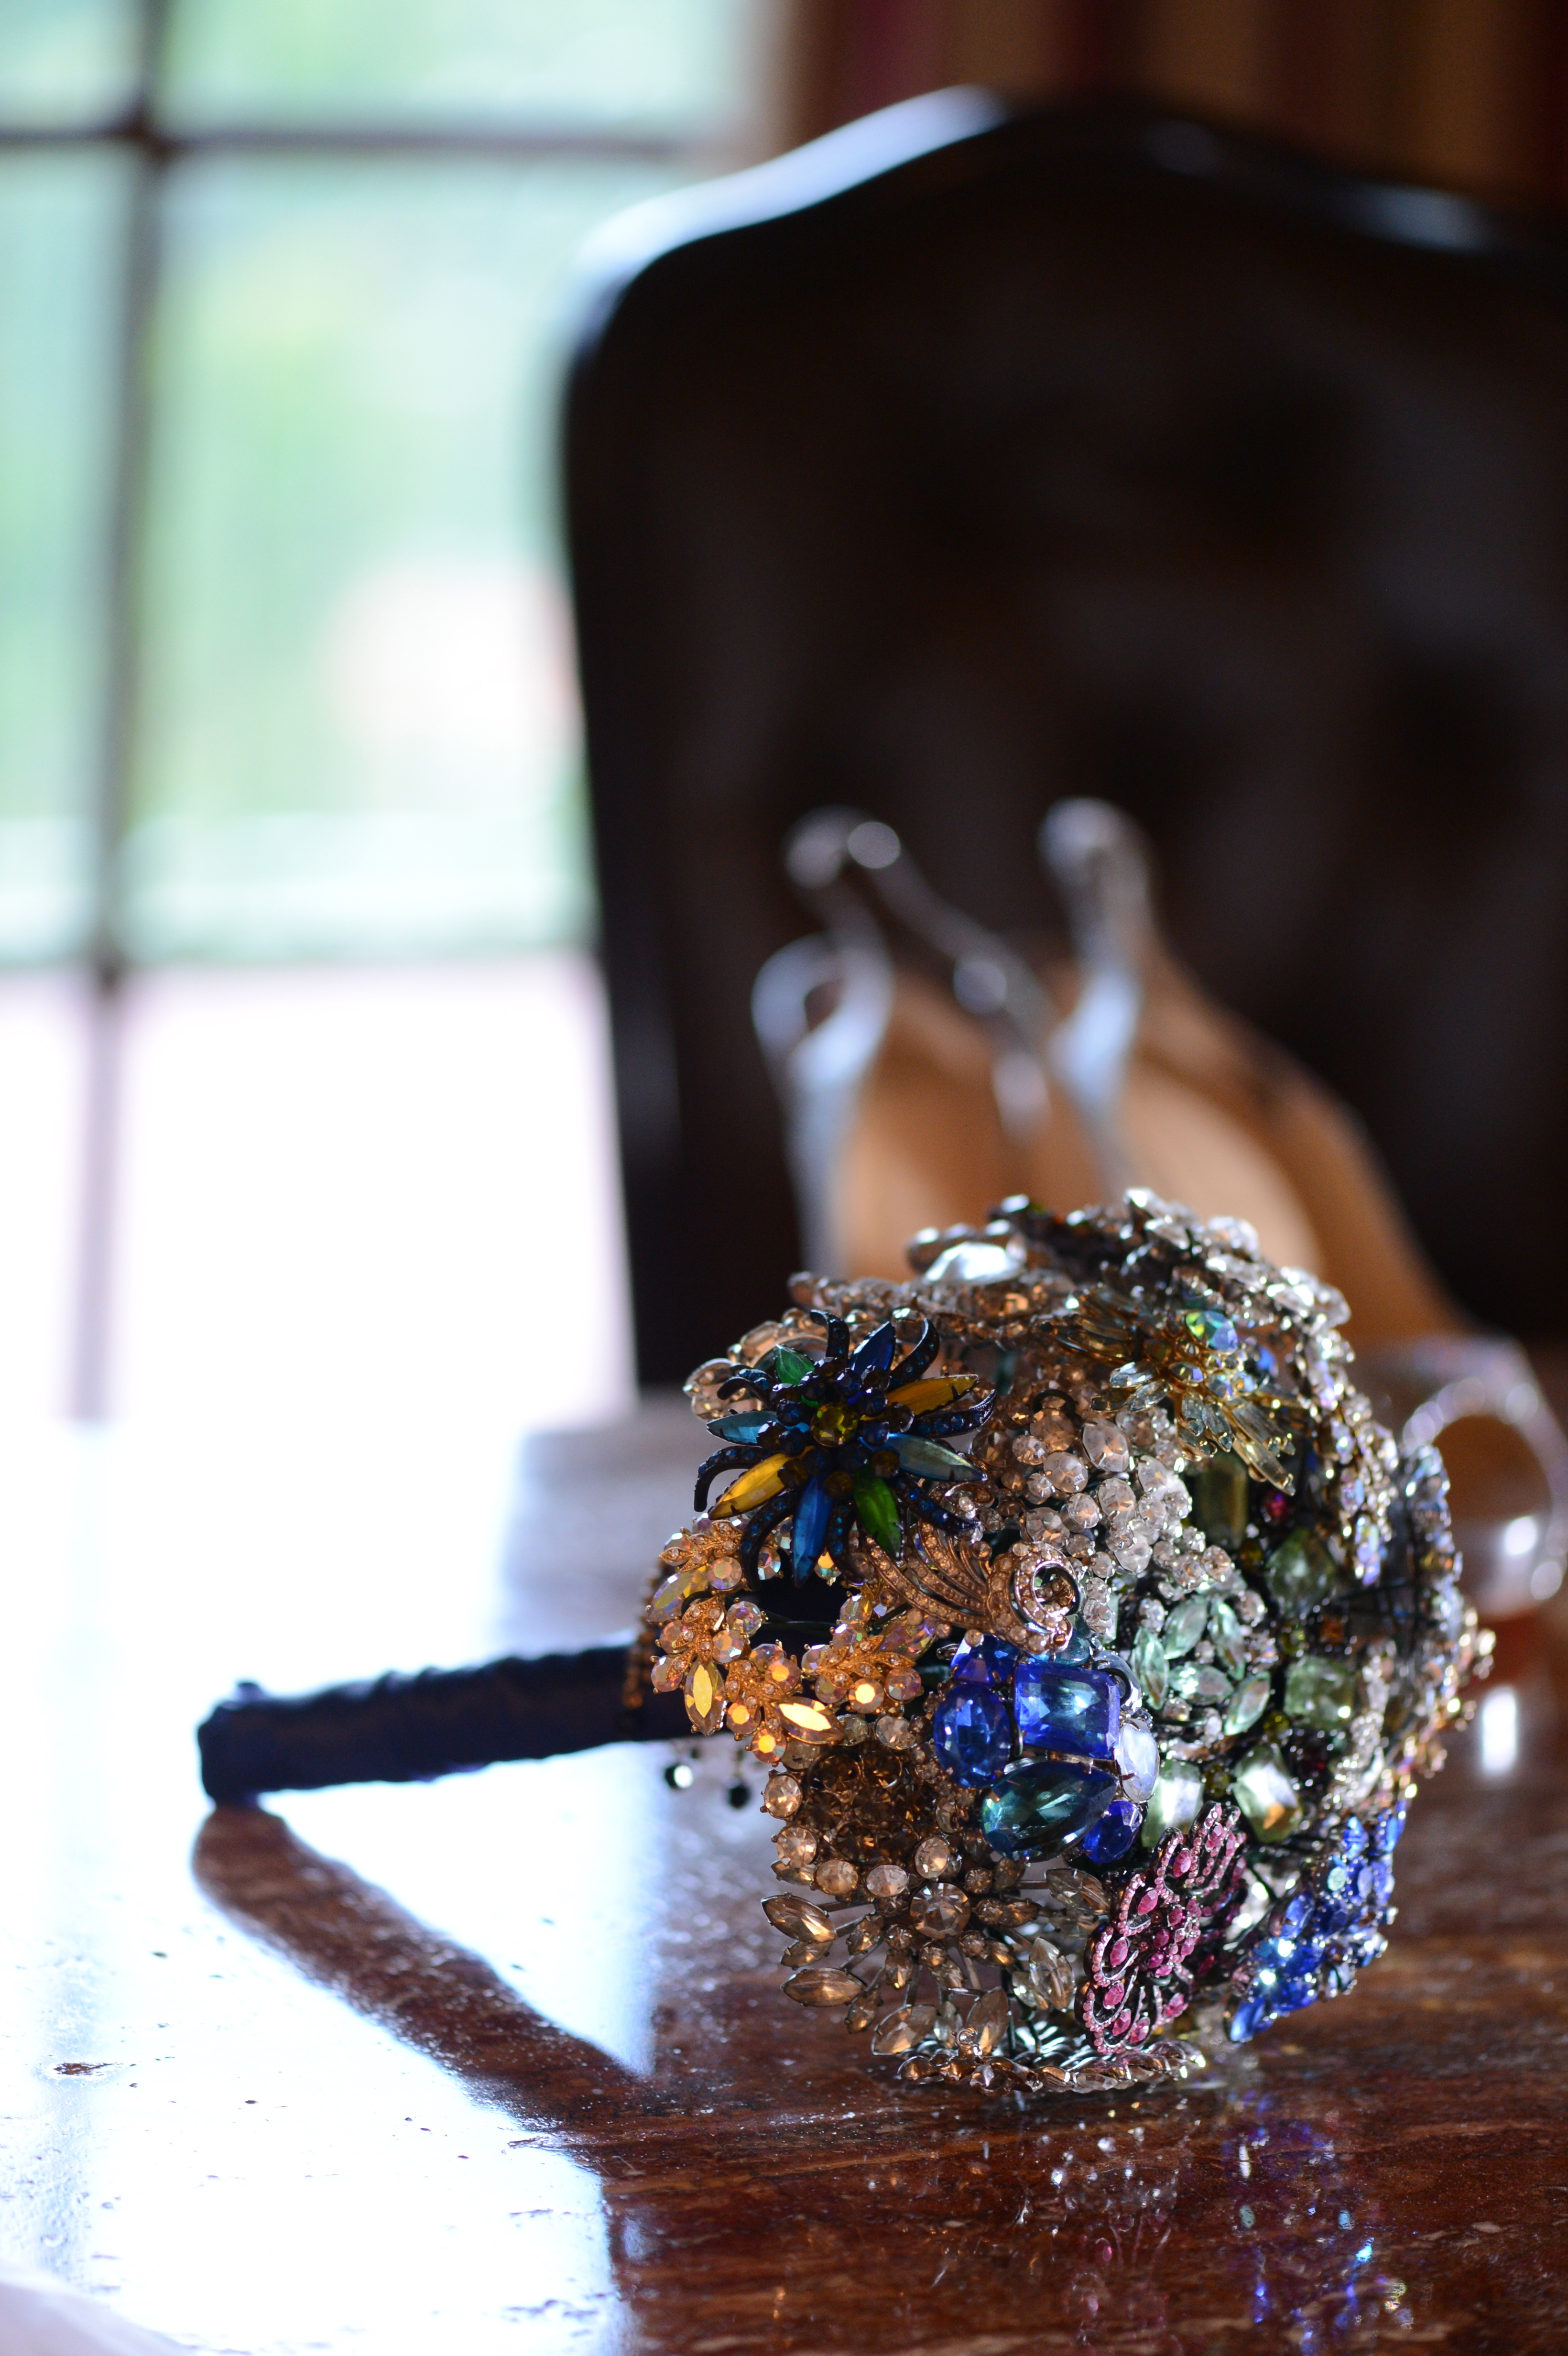 Bouquet, Wedding, Jewel tones, Persephone eddie, Vintage brooch bouquet